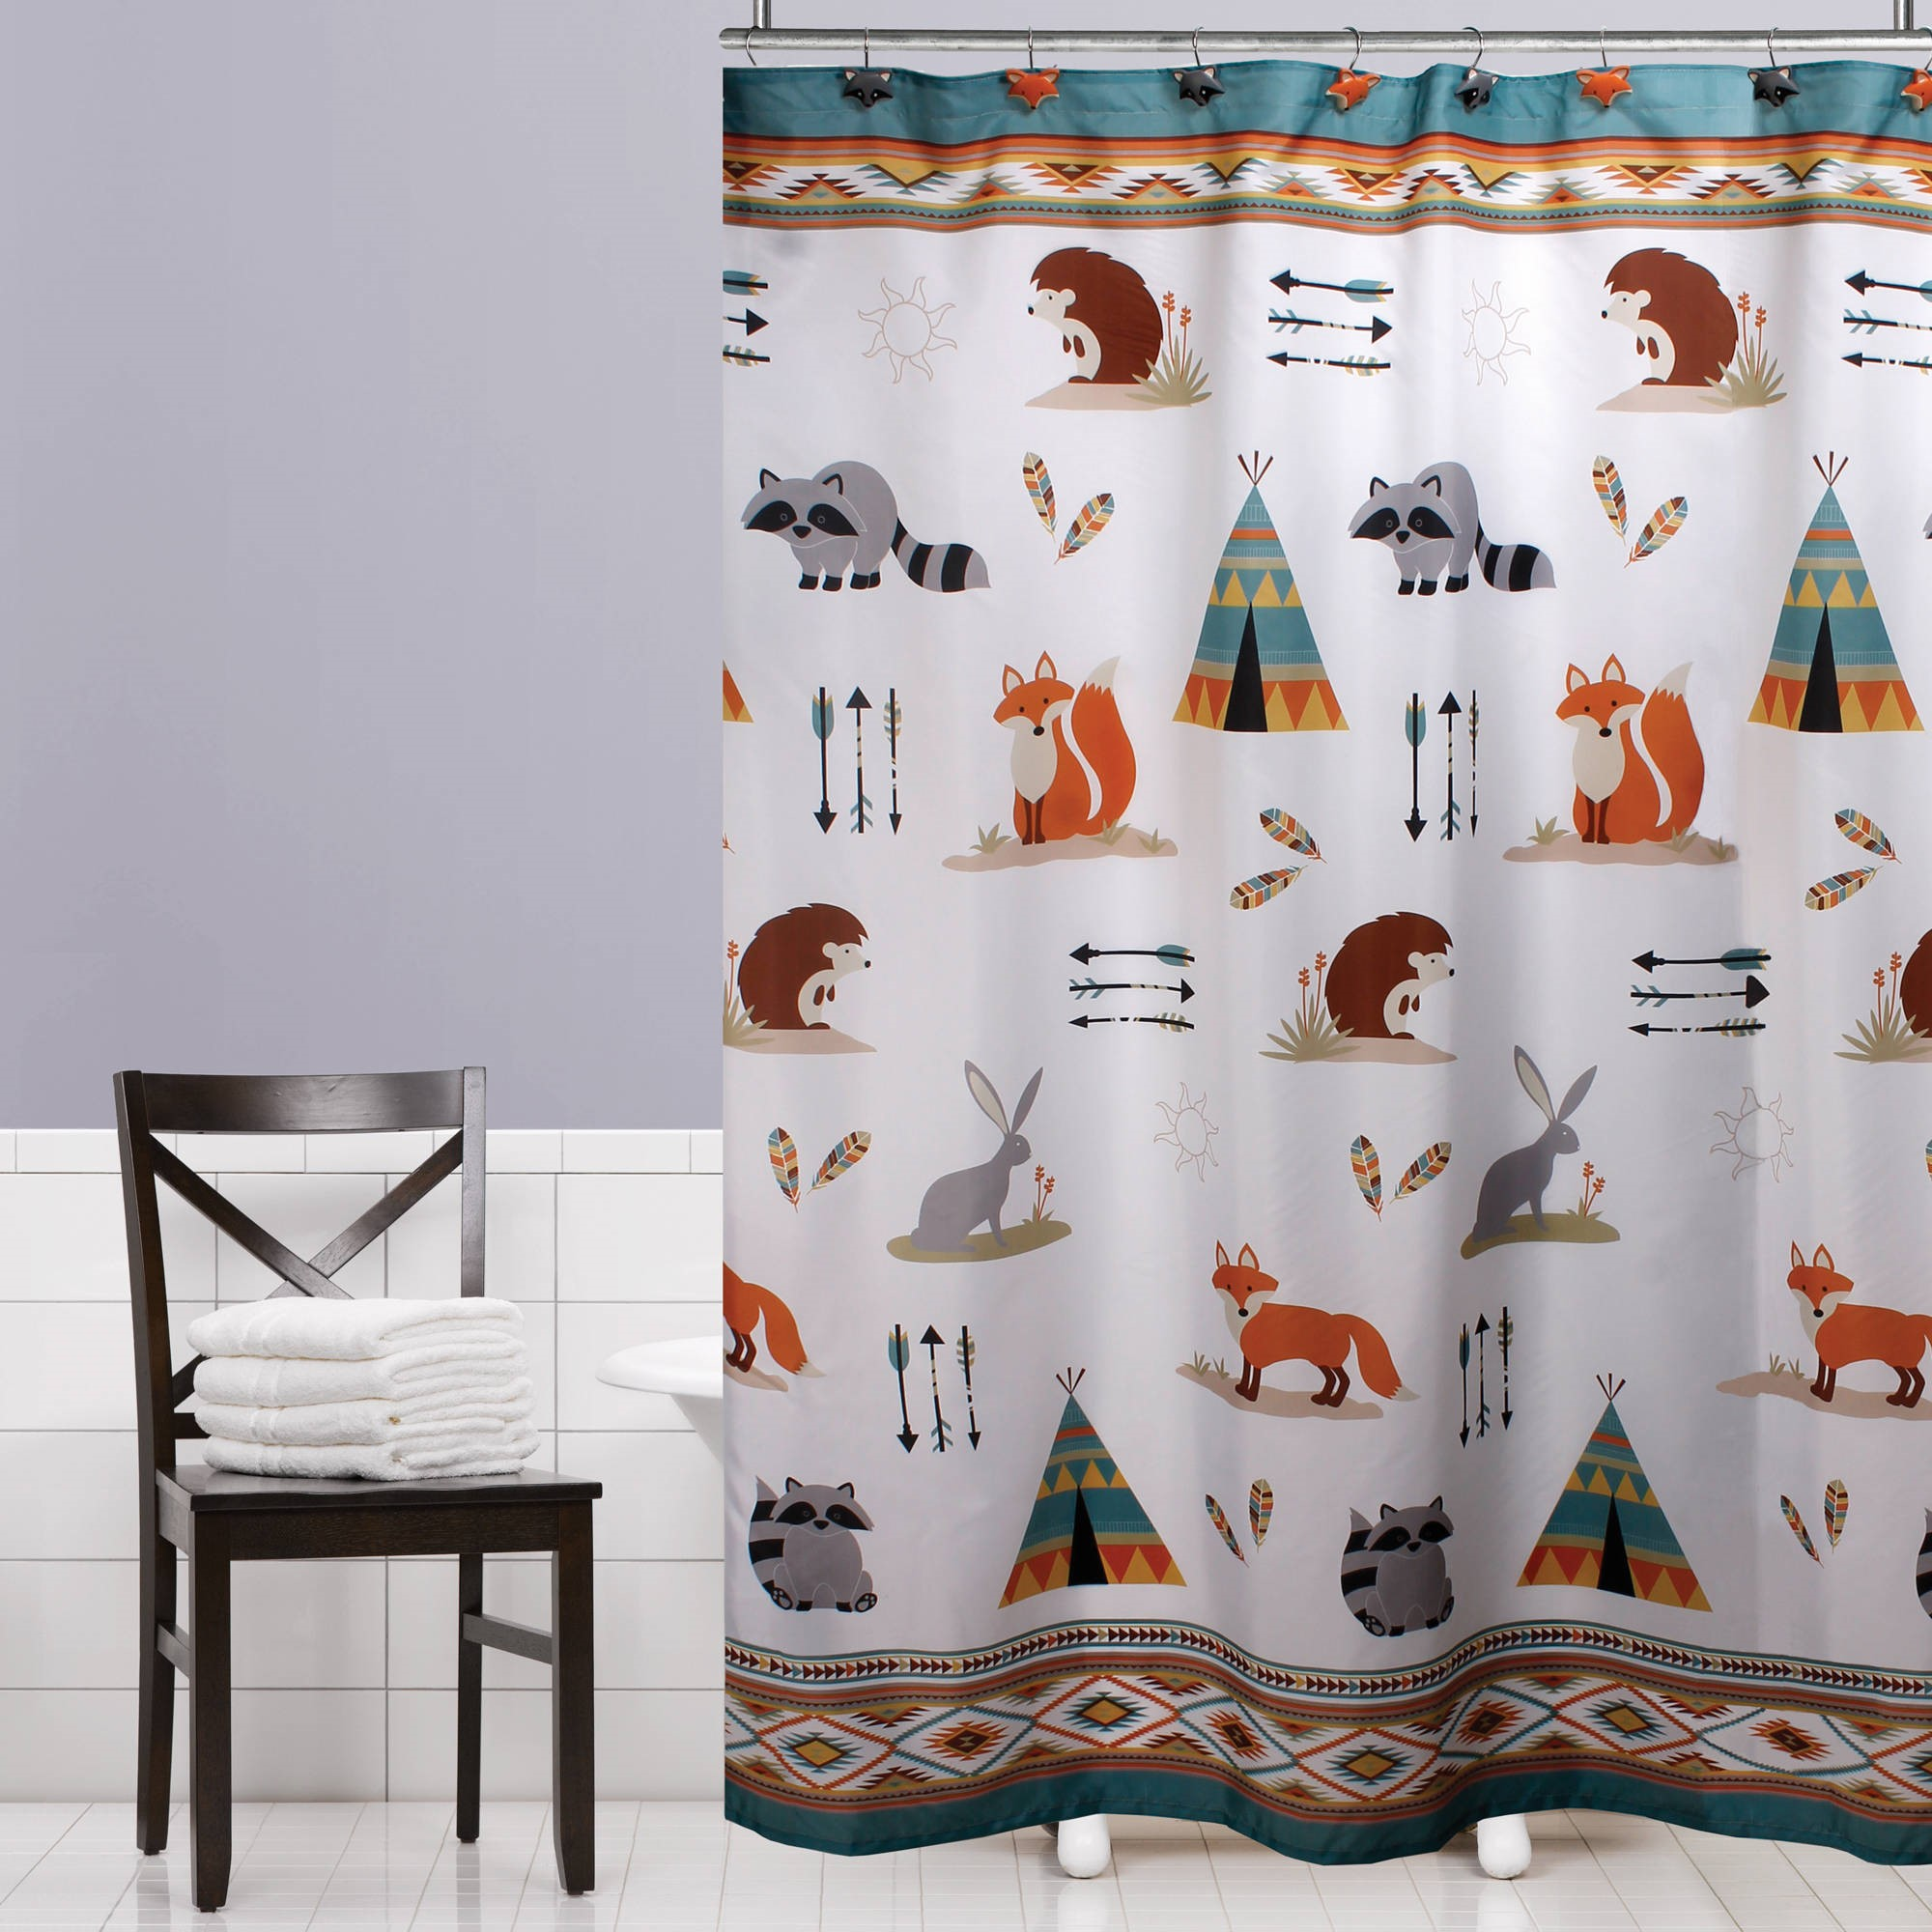 Mainstays Kids Woodland Creatures Fabric Shower Curtain by Saturday Knight LTD